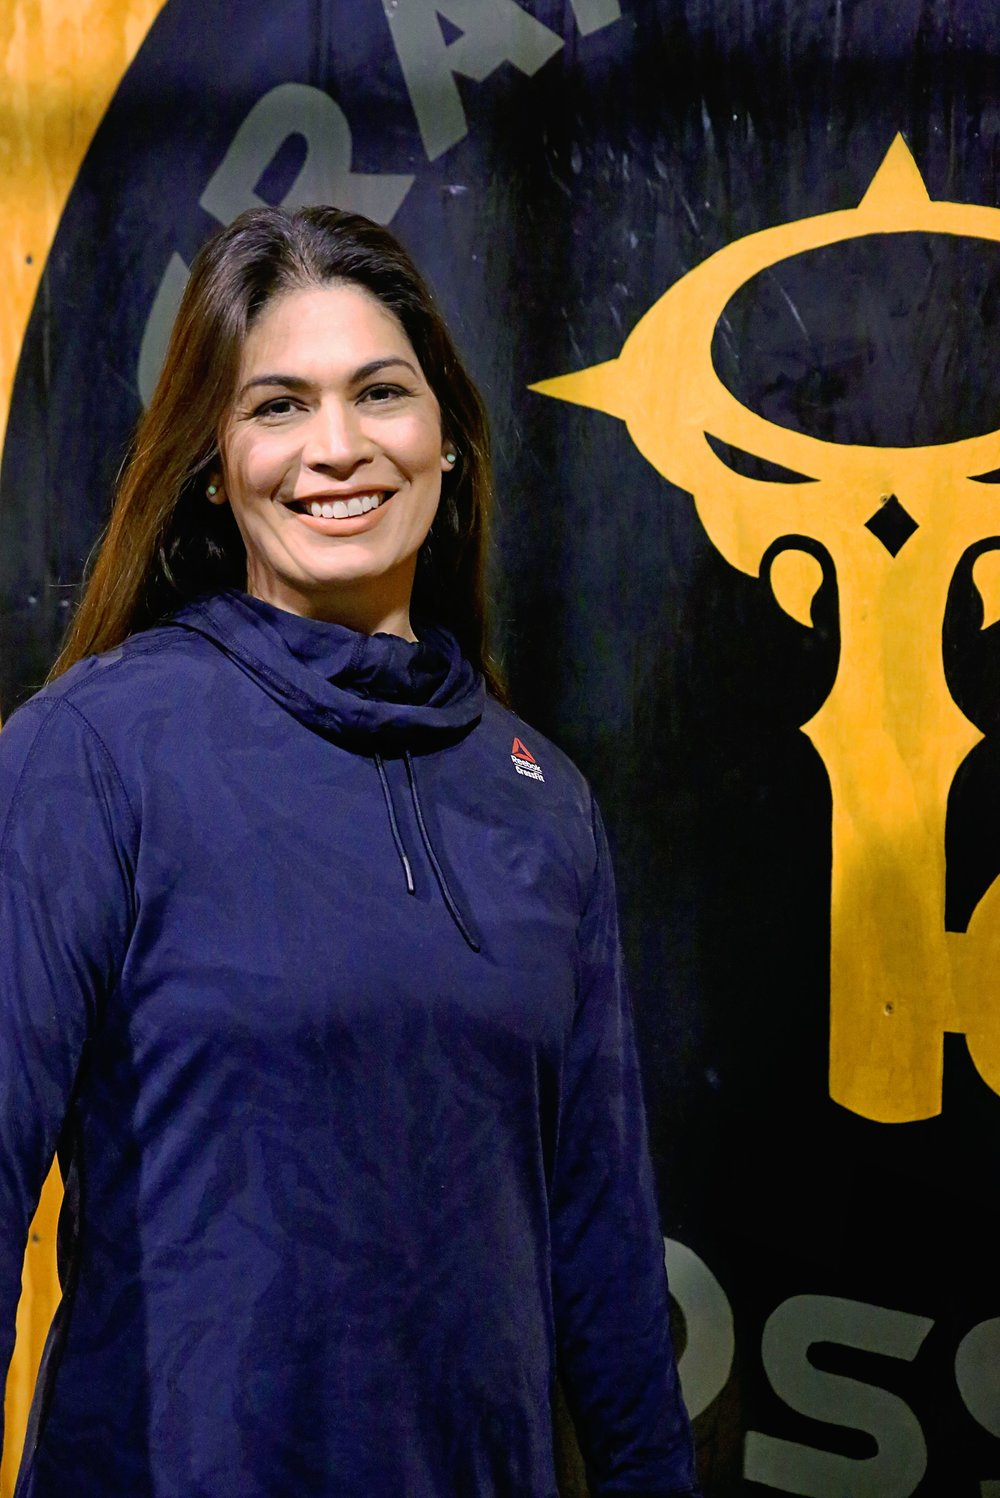 "Kat de Leon-Lantto - Coach/personal trainer/marketing- CrossFit Level 1- CrossFit Gymnastics- Certified Personal Trainer (ACE)- Certified Group Exercise Instructor (AFAA)- Indoor Cycling & Kettlebell Instructor (NETA)- Sport Yoga (NESTA) & Pound® InstructorKat has worked in the fitness industry off and on since the age of 19. She will soon approach 20 years in the field! Though she holds a Bachelor's degree in Art Studio from the University of California at Santa Barbara (UCSB), her calling has always been in fitness.Kat got her start working in the fitness industry as Navy Fitness Coordinator. In addition to coordinating mainstream fitness classes and personal training, she helped coordinate and run semi-annual physical readiness assessments and administer remedial physical fitness training sessions for active duty sailors.Kat has been a middle school and high school swim coach, practiced ""stand-up"" American Kickboxing and managed various other mainstream fitness programs."